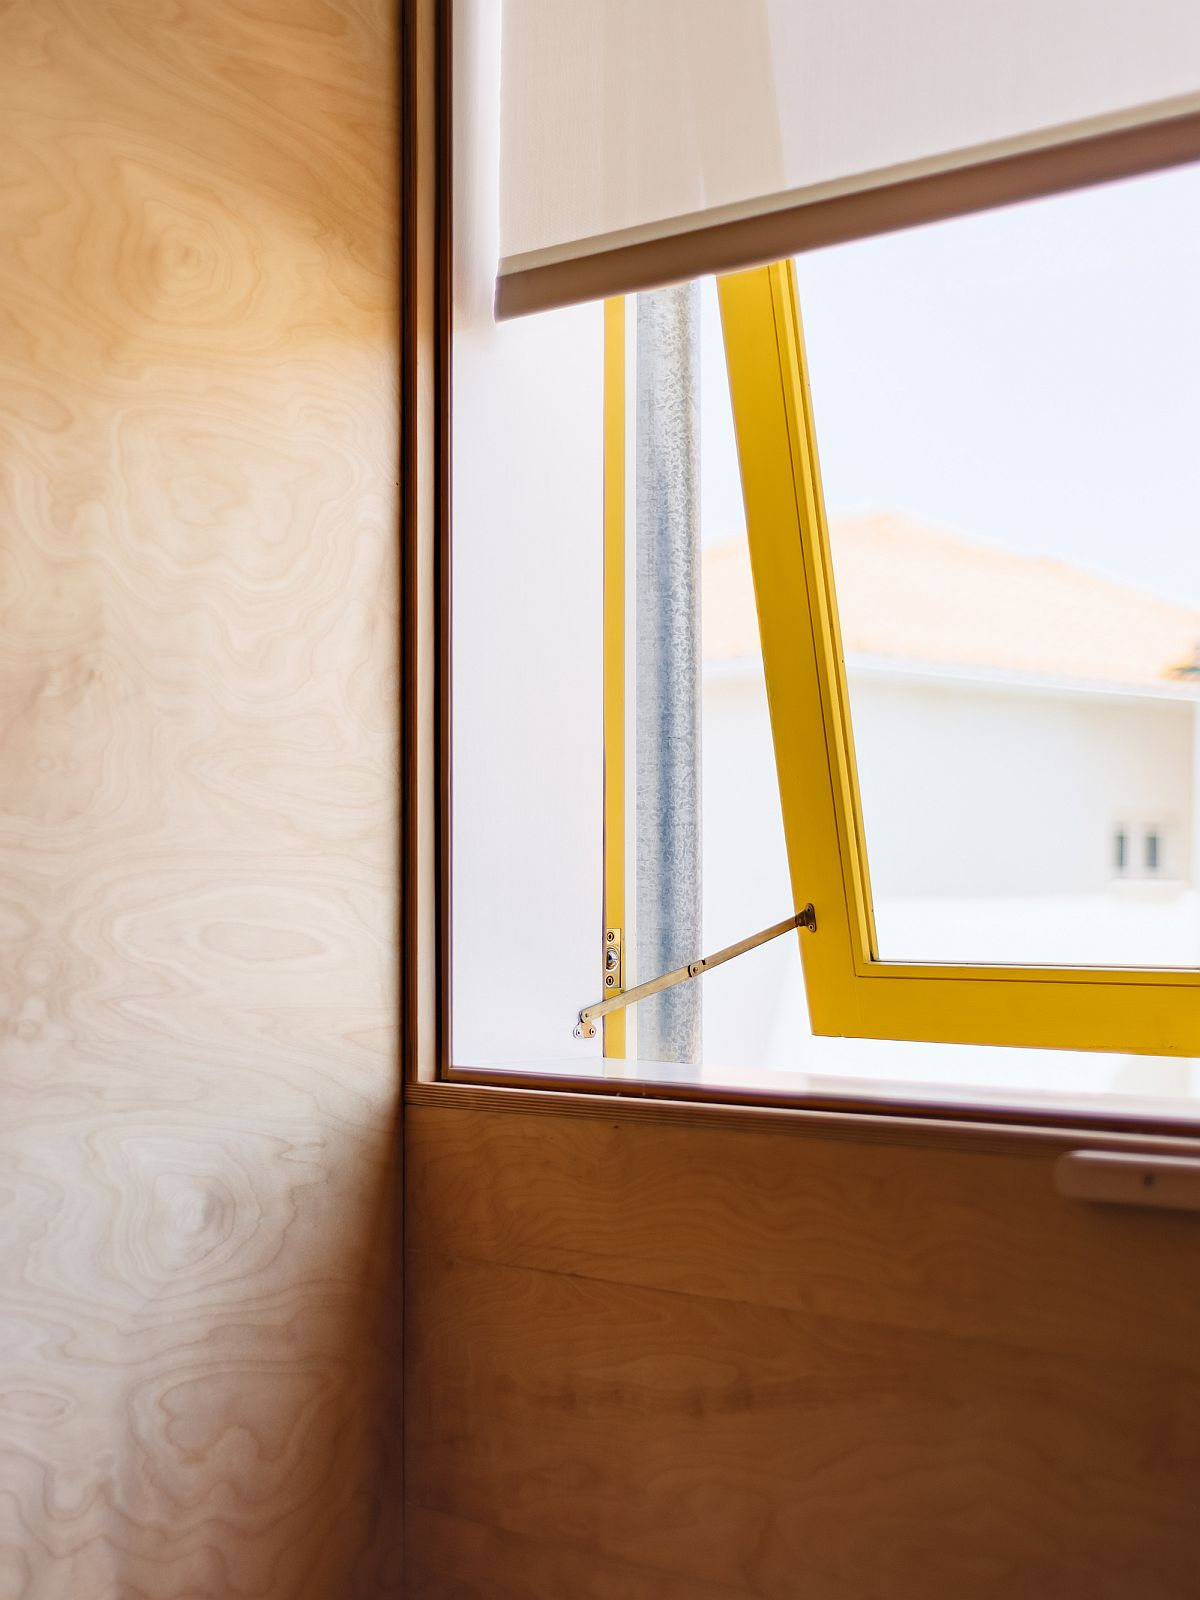 Little-yellow-accents-bring-brightness-to-the-revamped-portugese-home-70916